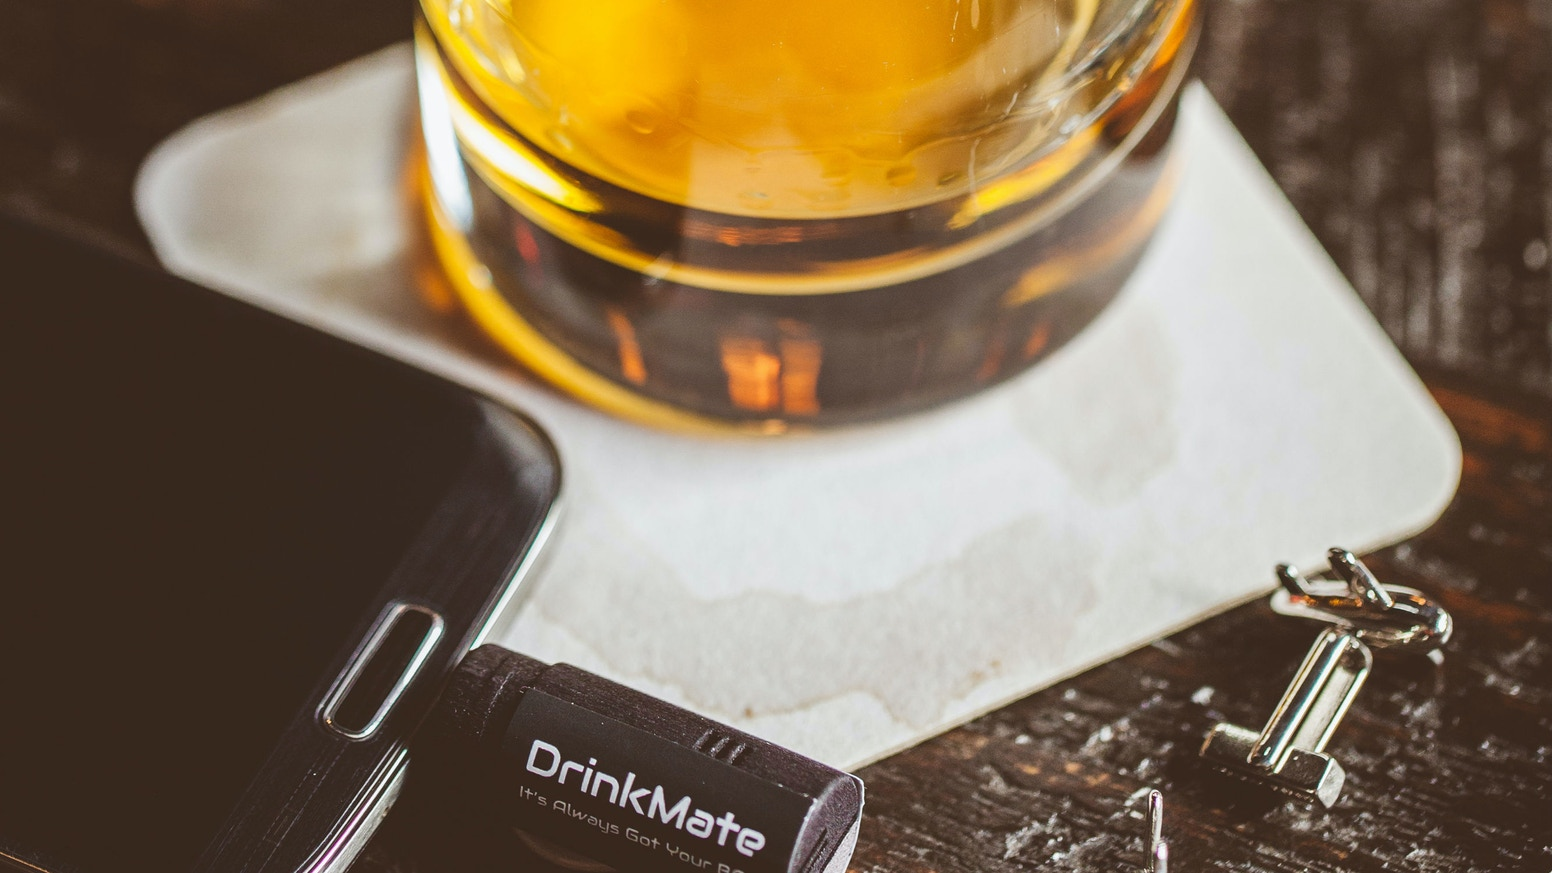 Meet DrinkMate, the tiny breathalyzer that plugs into your phone!